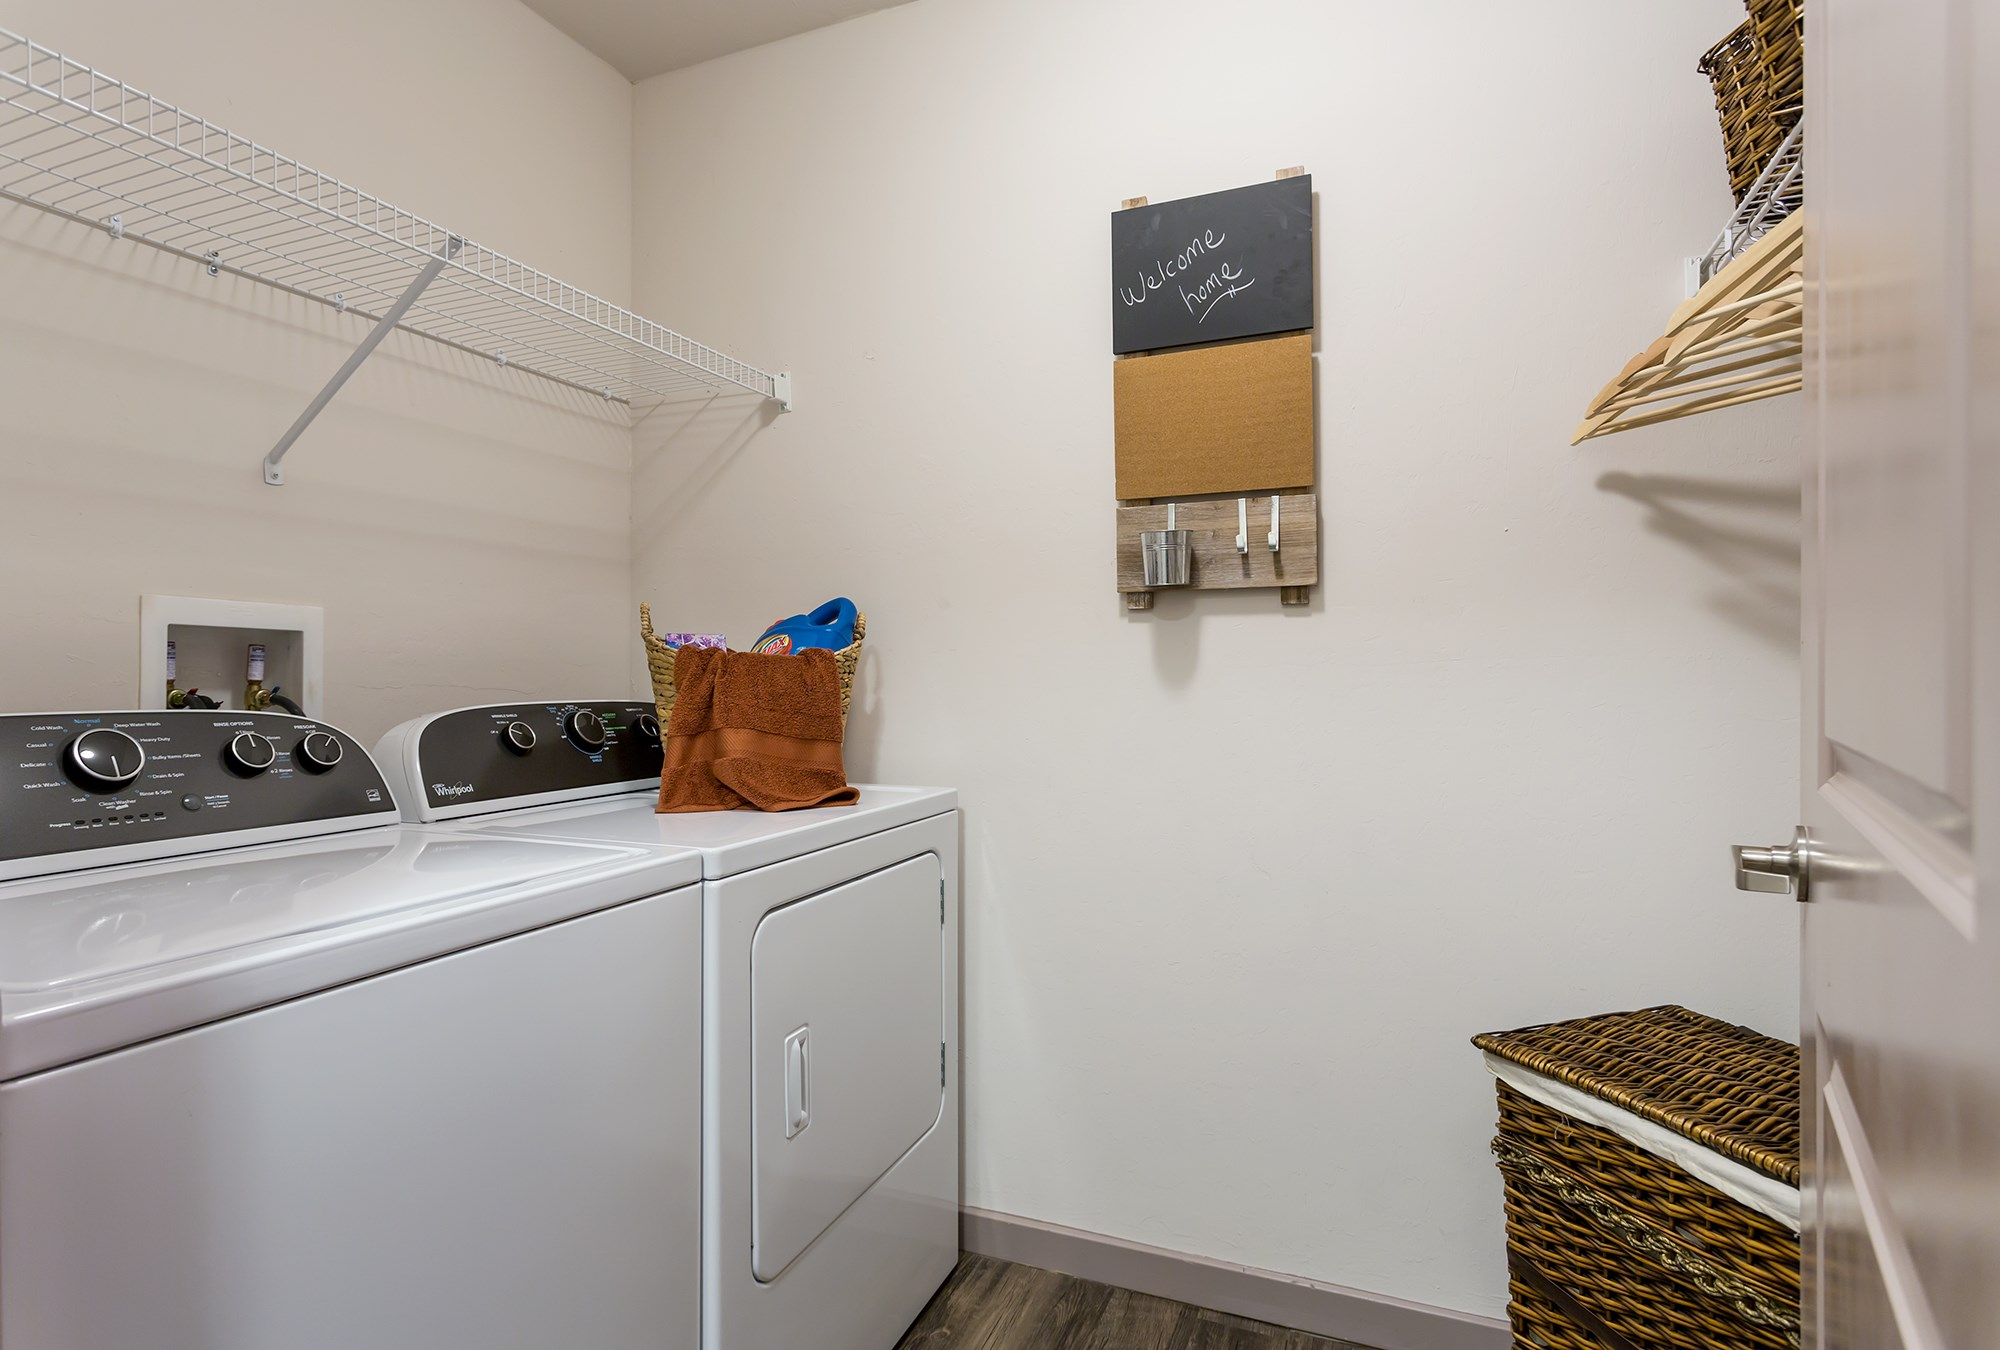 Laundry Room at Orchid Run Apartments in Naples, FL